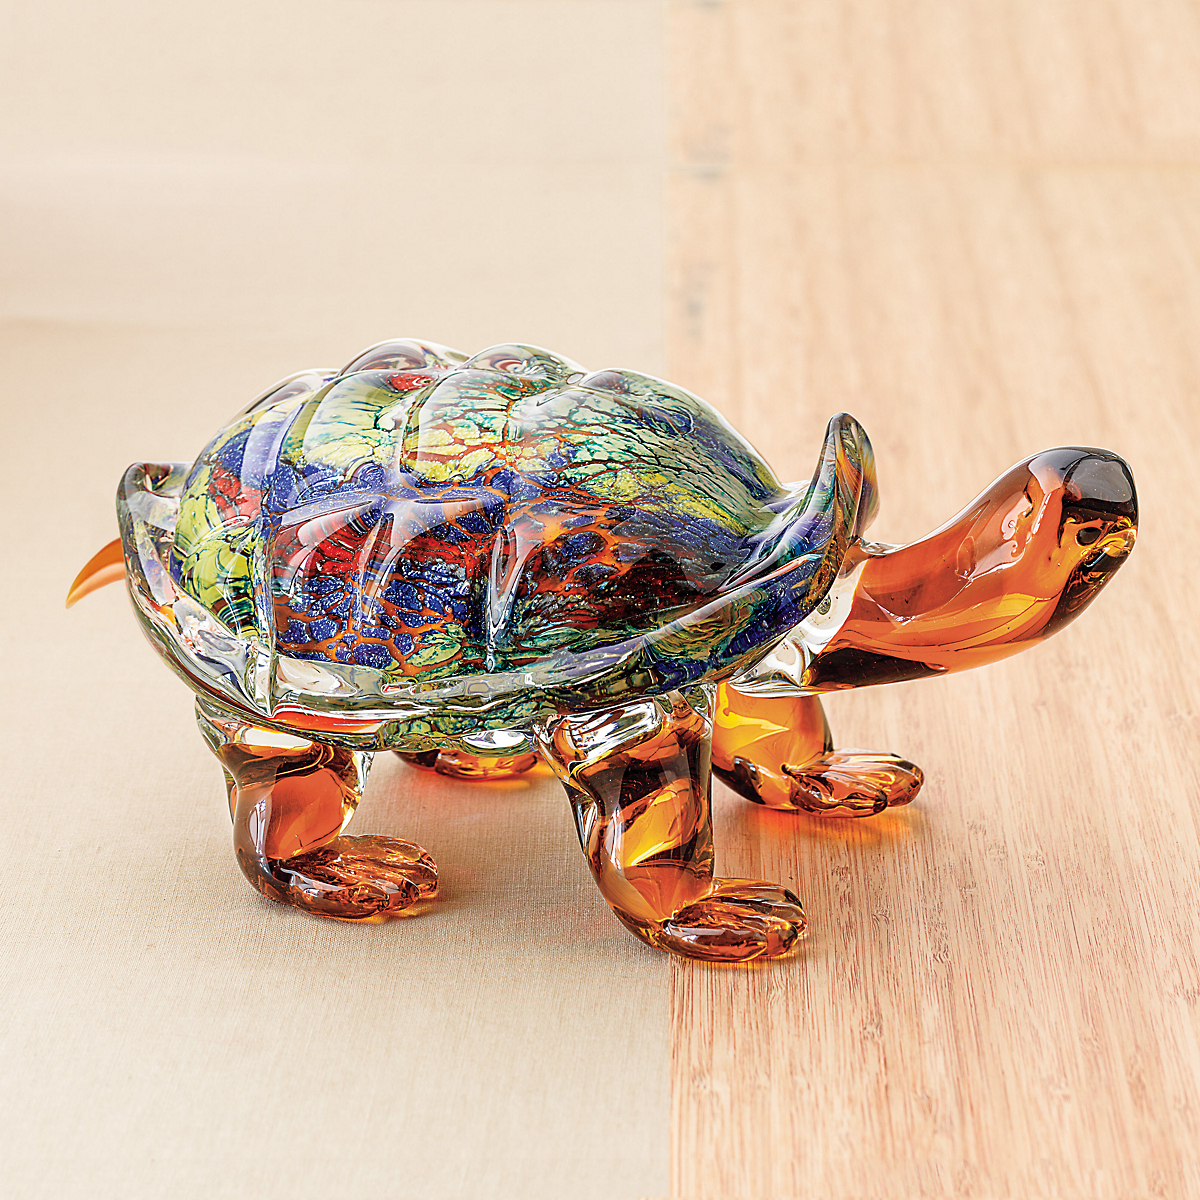 Grand Glass Tortoise